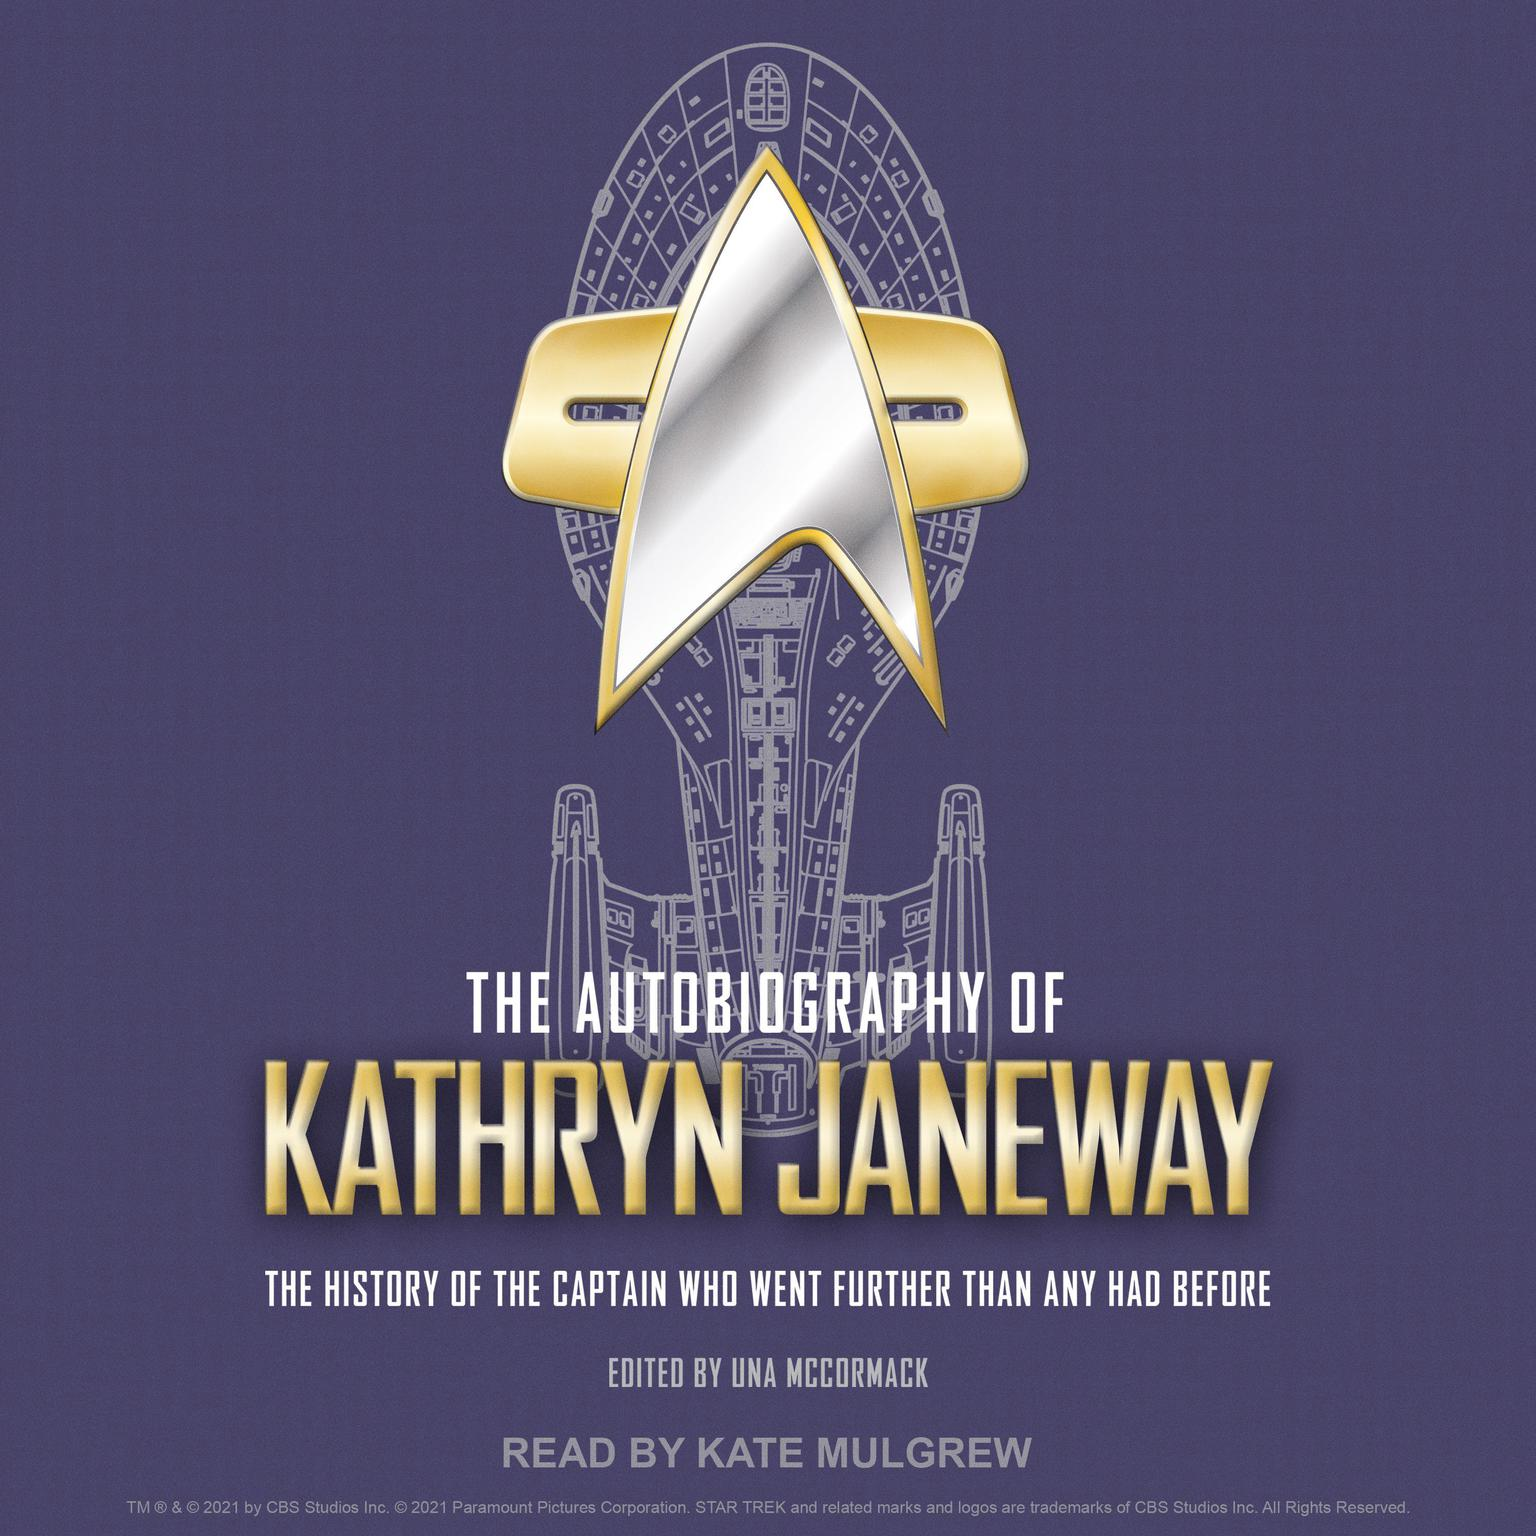 The Autobiography of Kathryn Janeway: The History of the Captain Who Went Further Than Any Had Before Audiobook, by Una McCormack